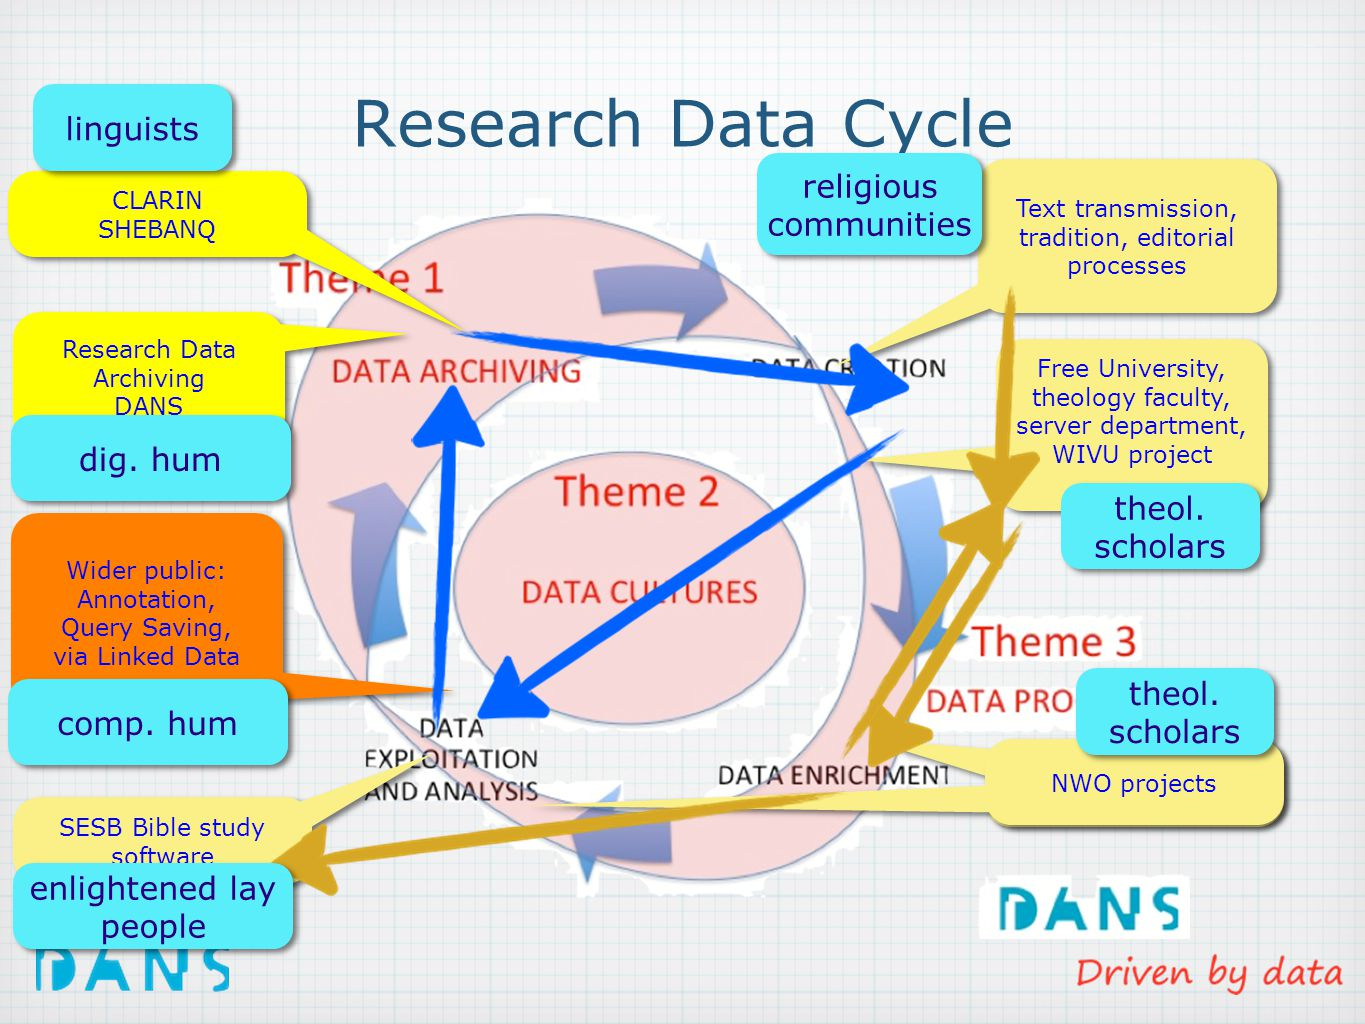 Research Data Cycle Text transmission, tradition, editorial processes Text transmission, tradition, editorial processes Free University, theology faculty, server department, WIVU project Free University, theology faculty, server department, WIVU project NWO projects Research Data Archiving DANS Research Data Archiving DANS SESB Bible study software SESB Bible study software religious communities theol.